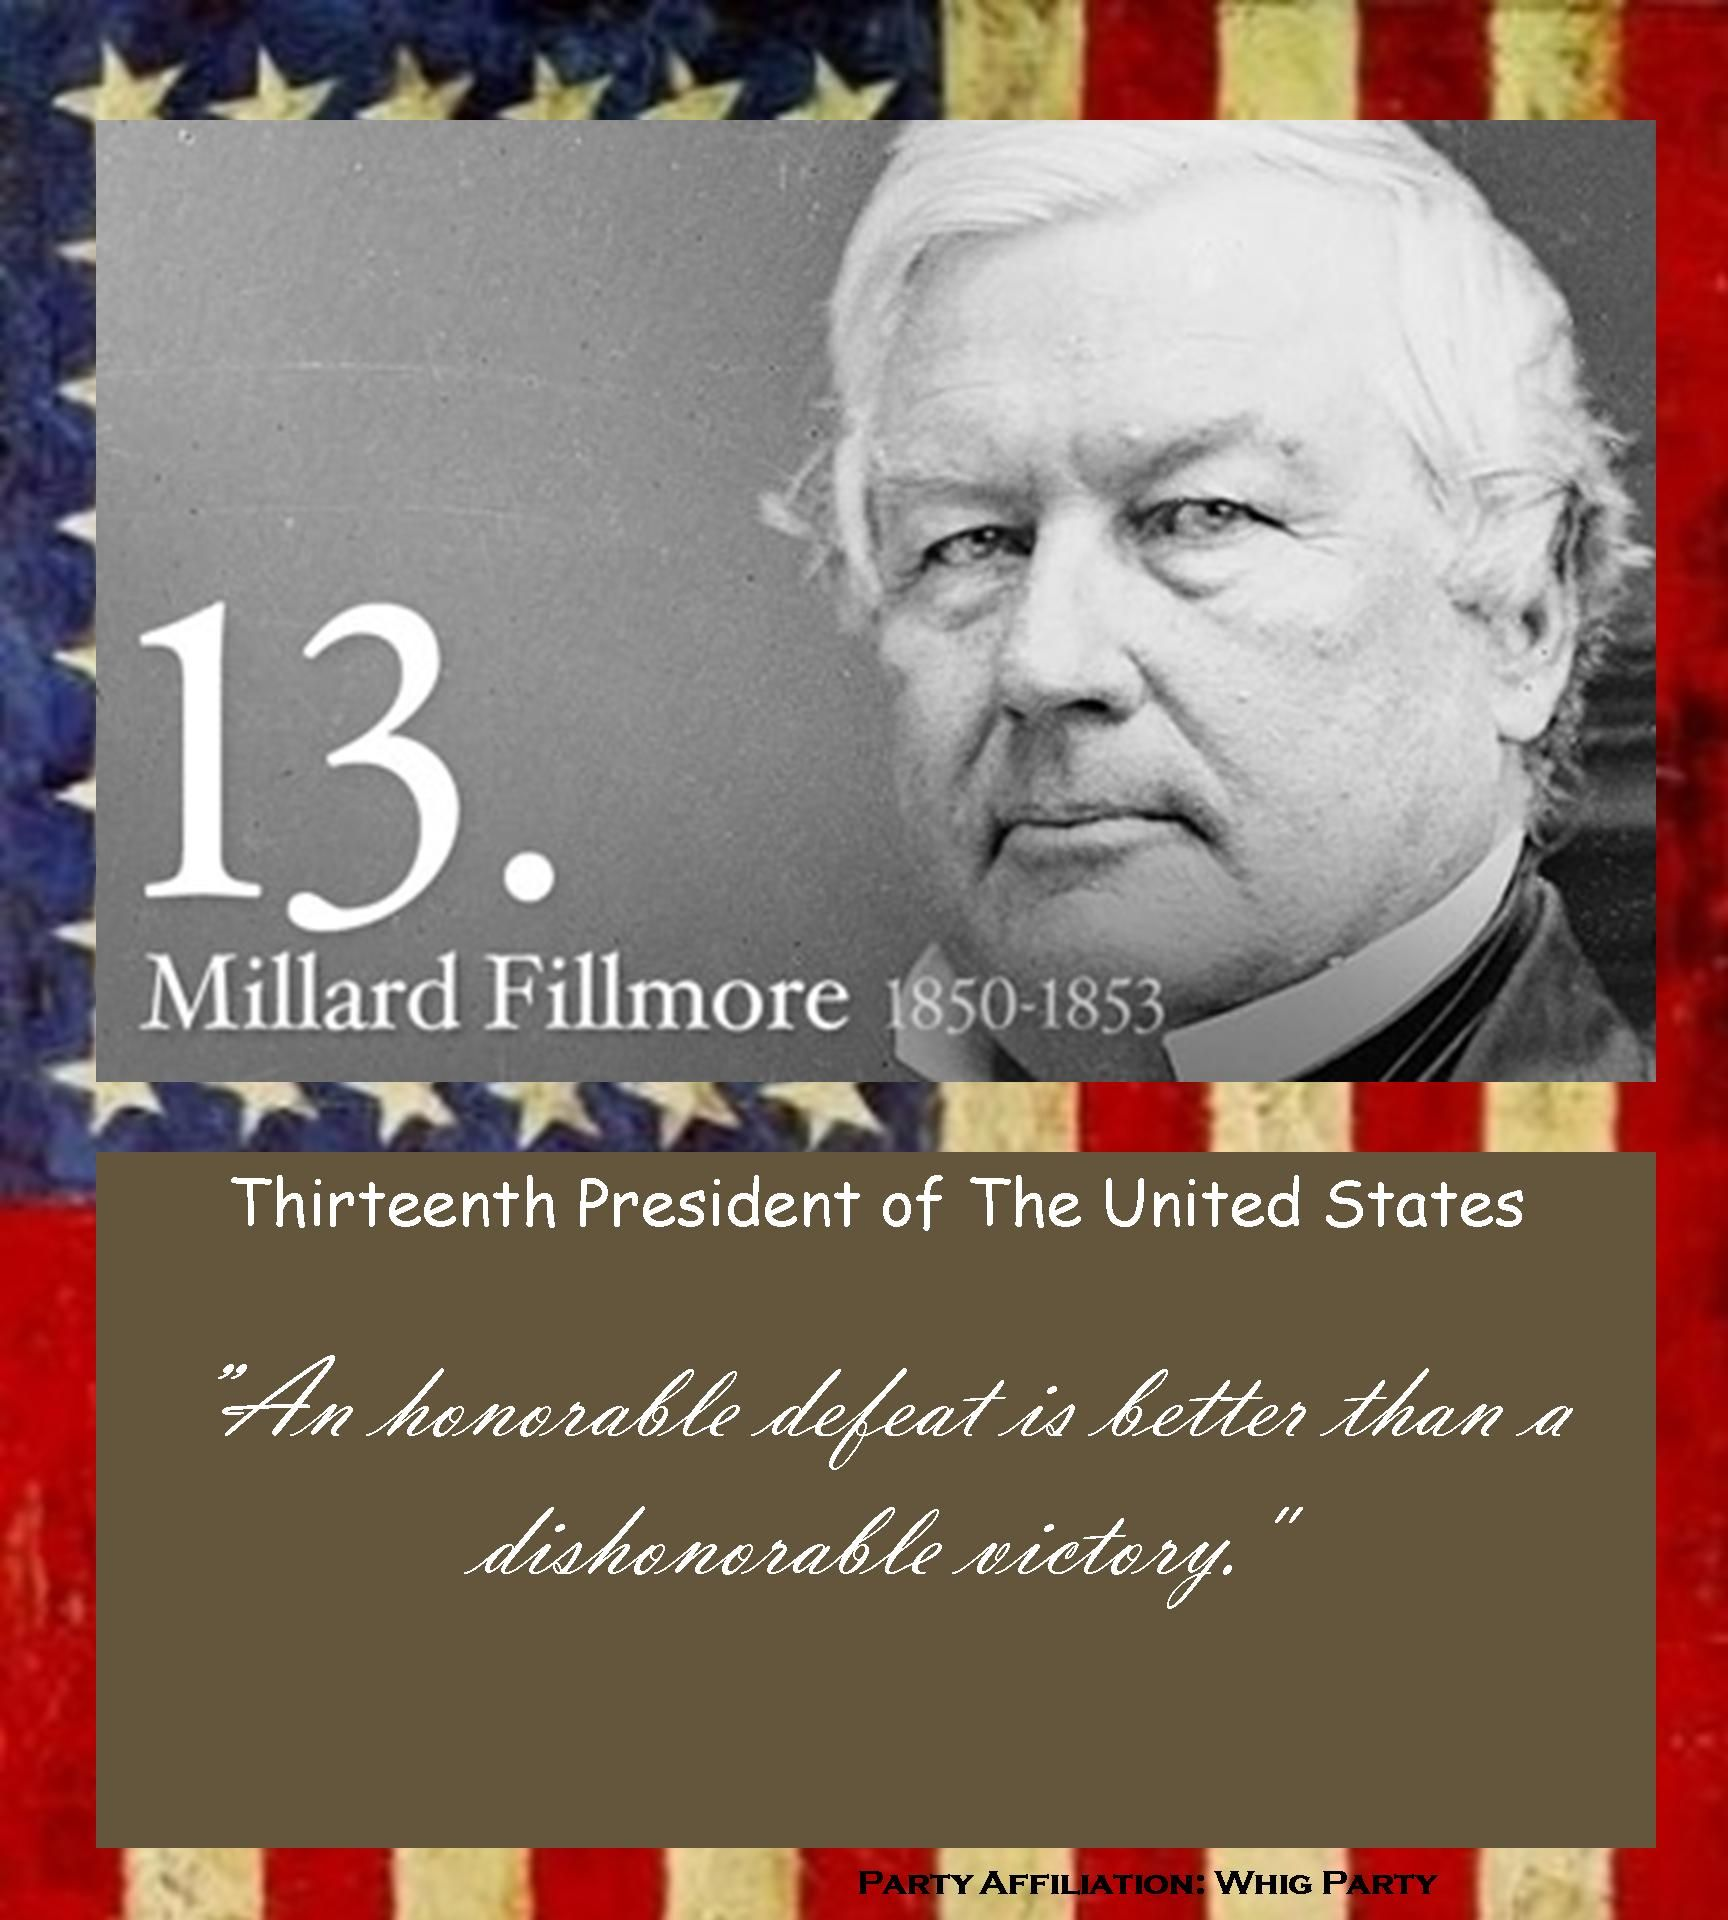 find this pin and more on 1850 1853 millard fillmore 13th president of the united states